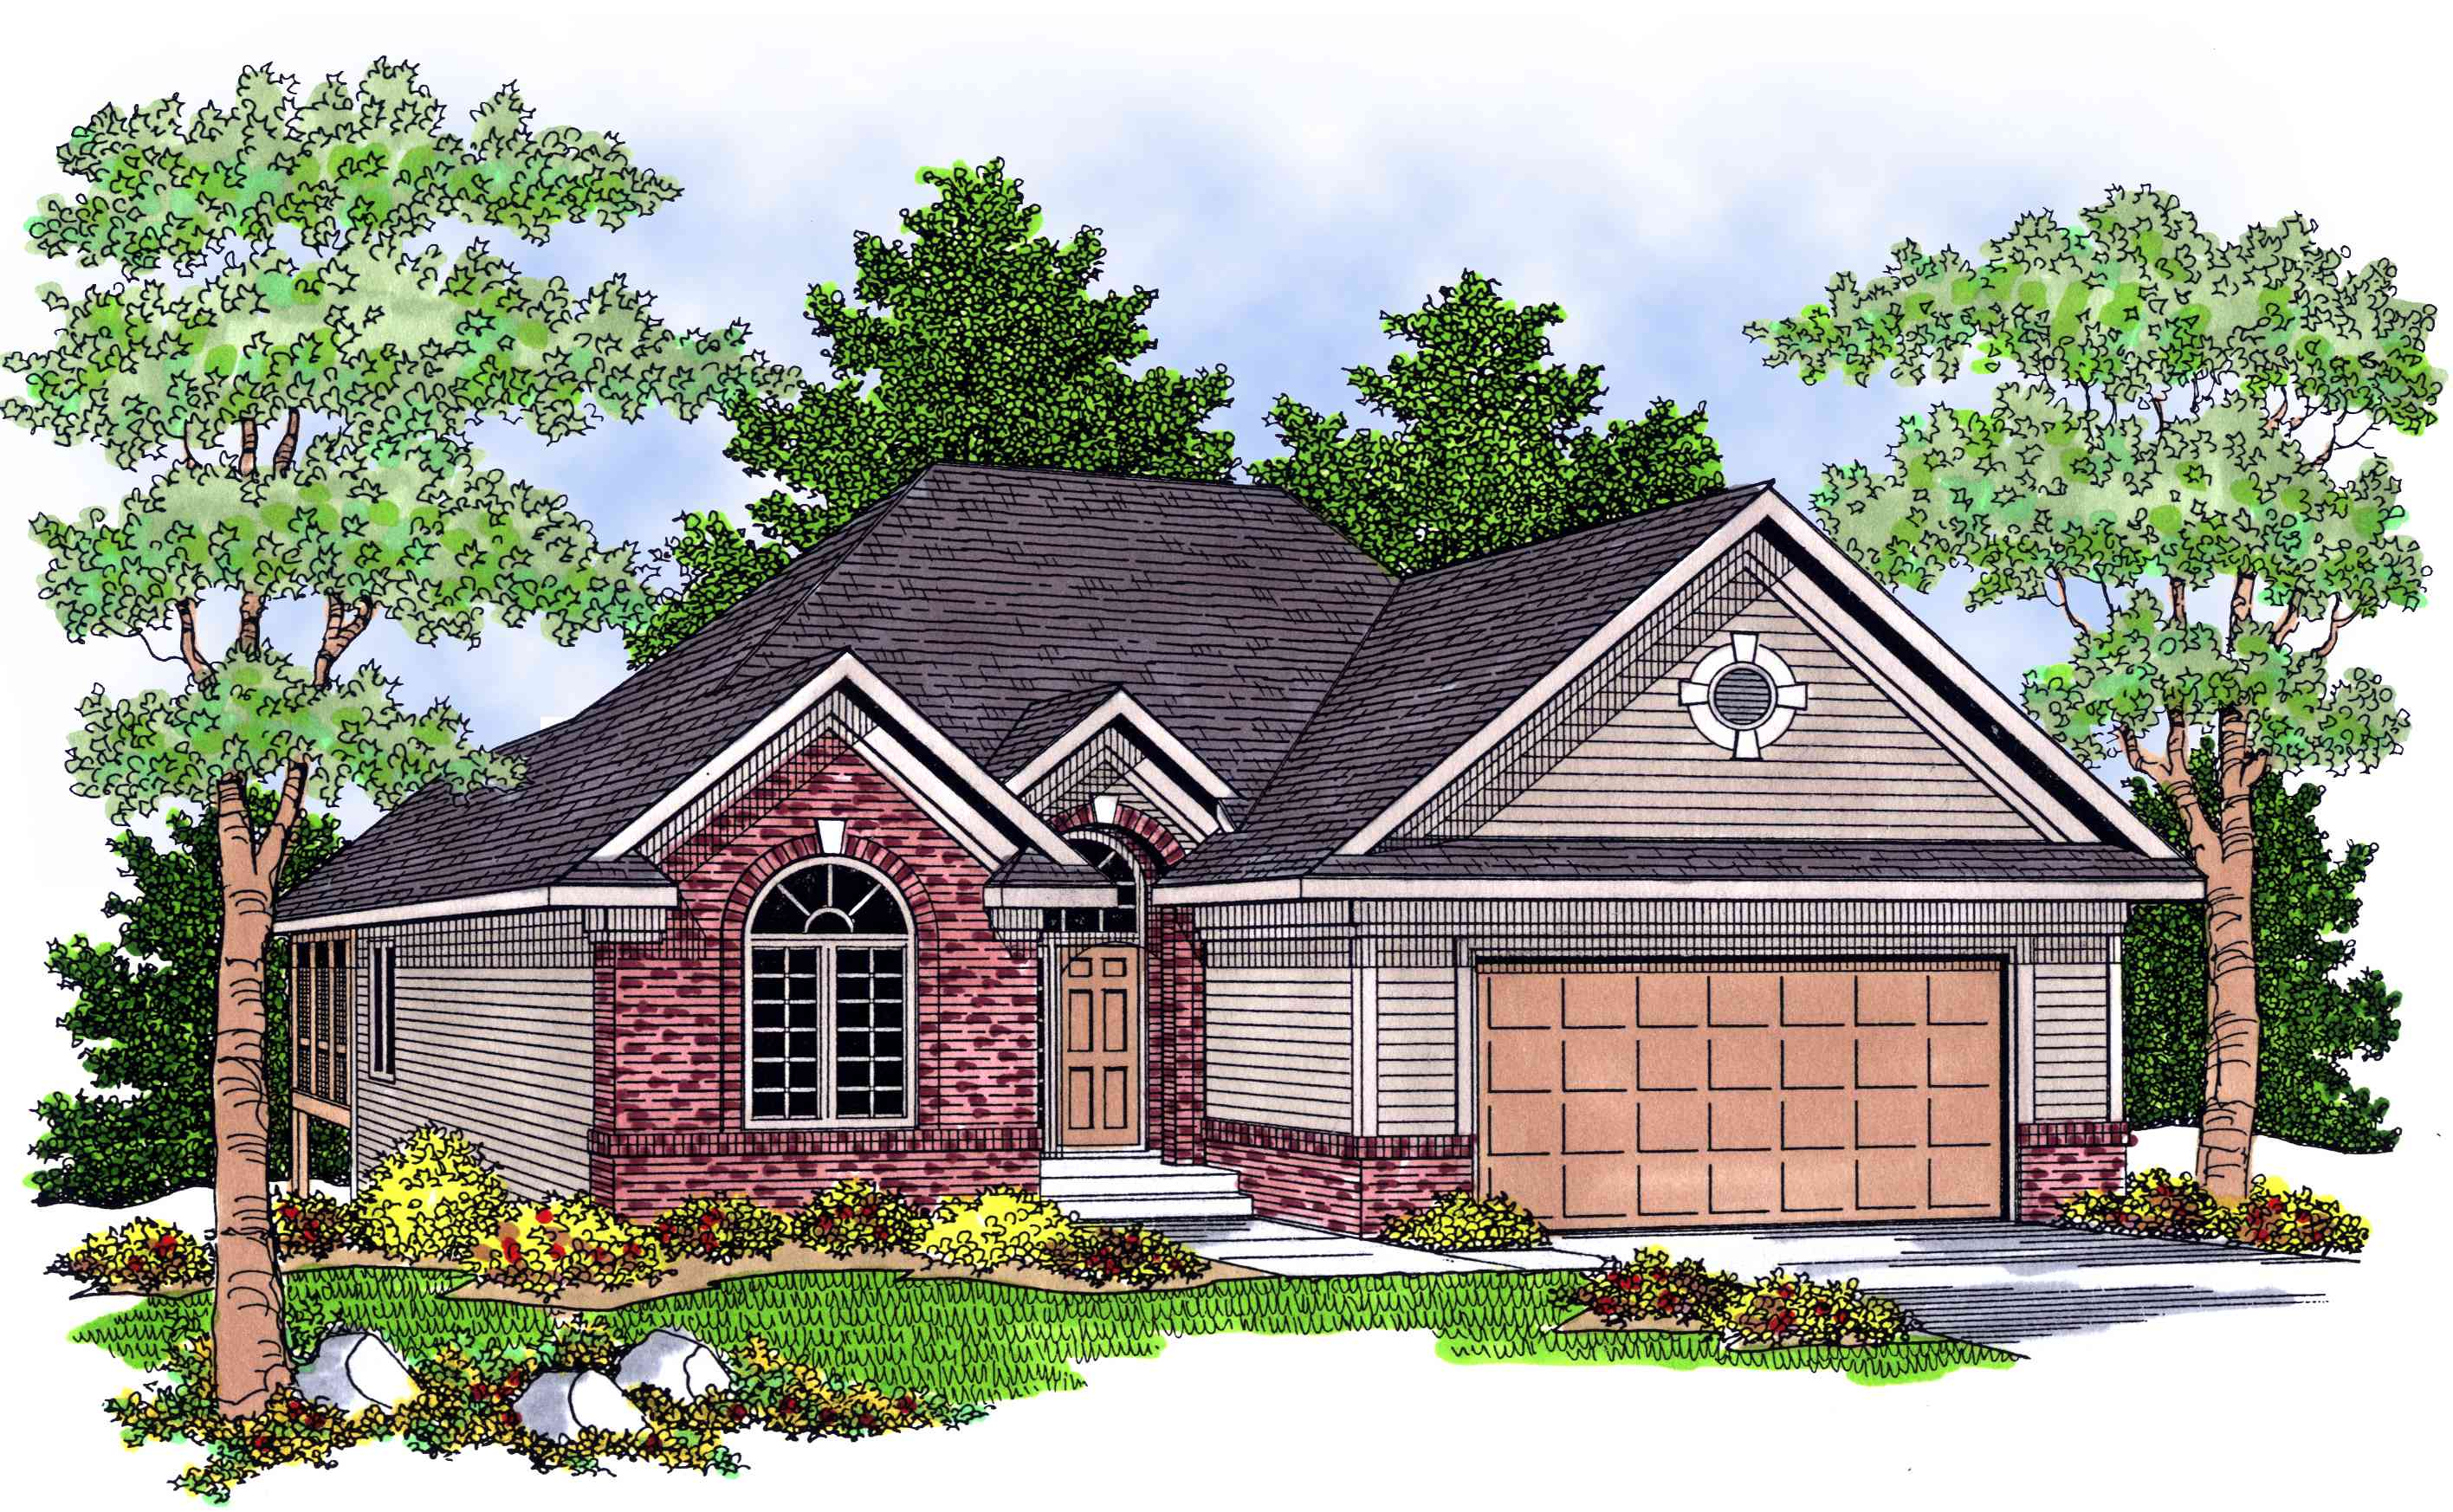 classic ranch home plan 8983ah architectural designs ForClassic Ranch Home Plans